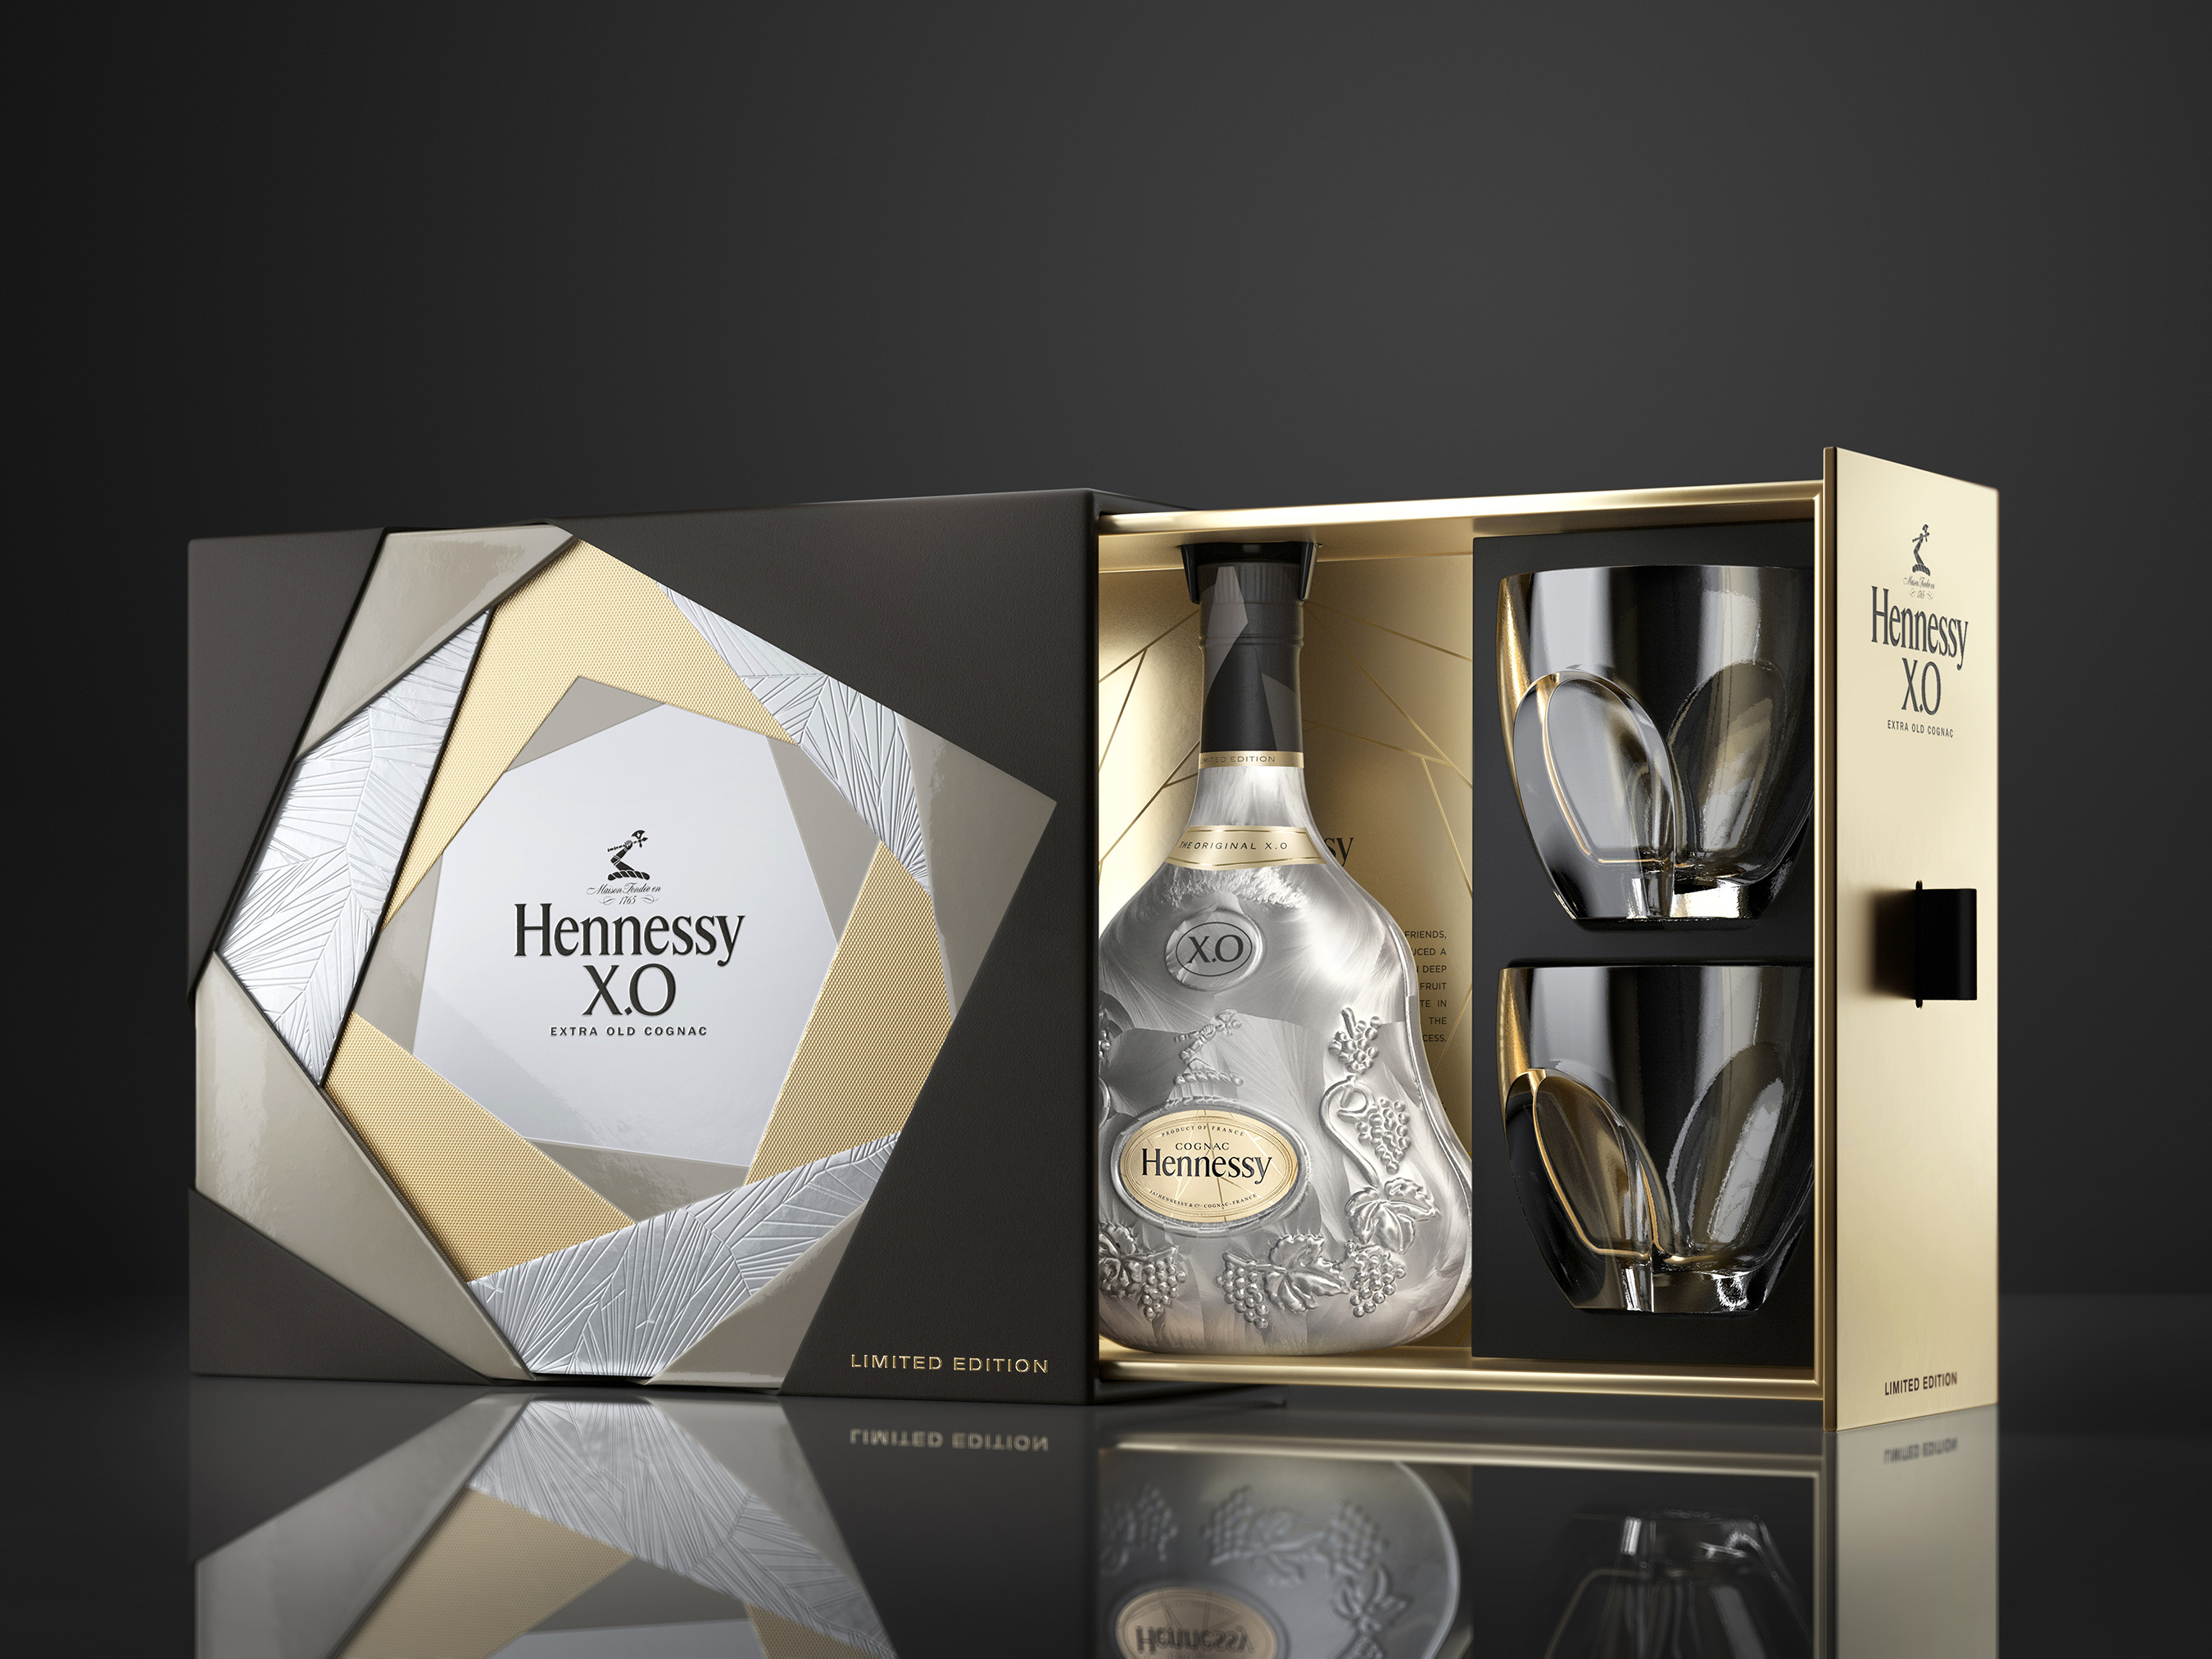 The Hennessy X.O Gift Pack comes with one bottle and two glasses.